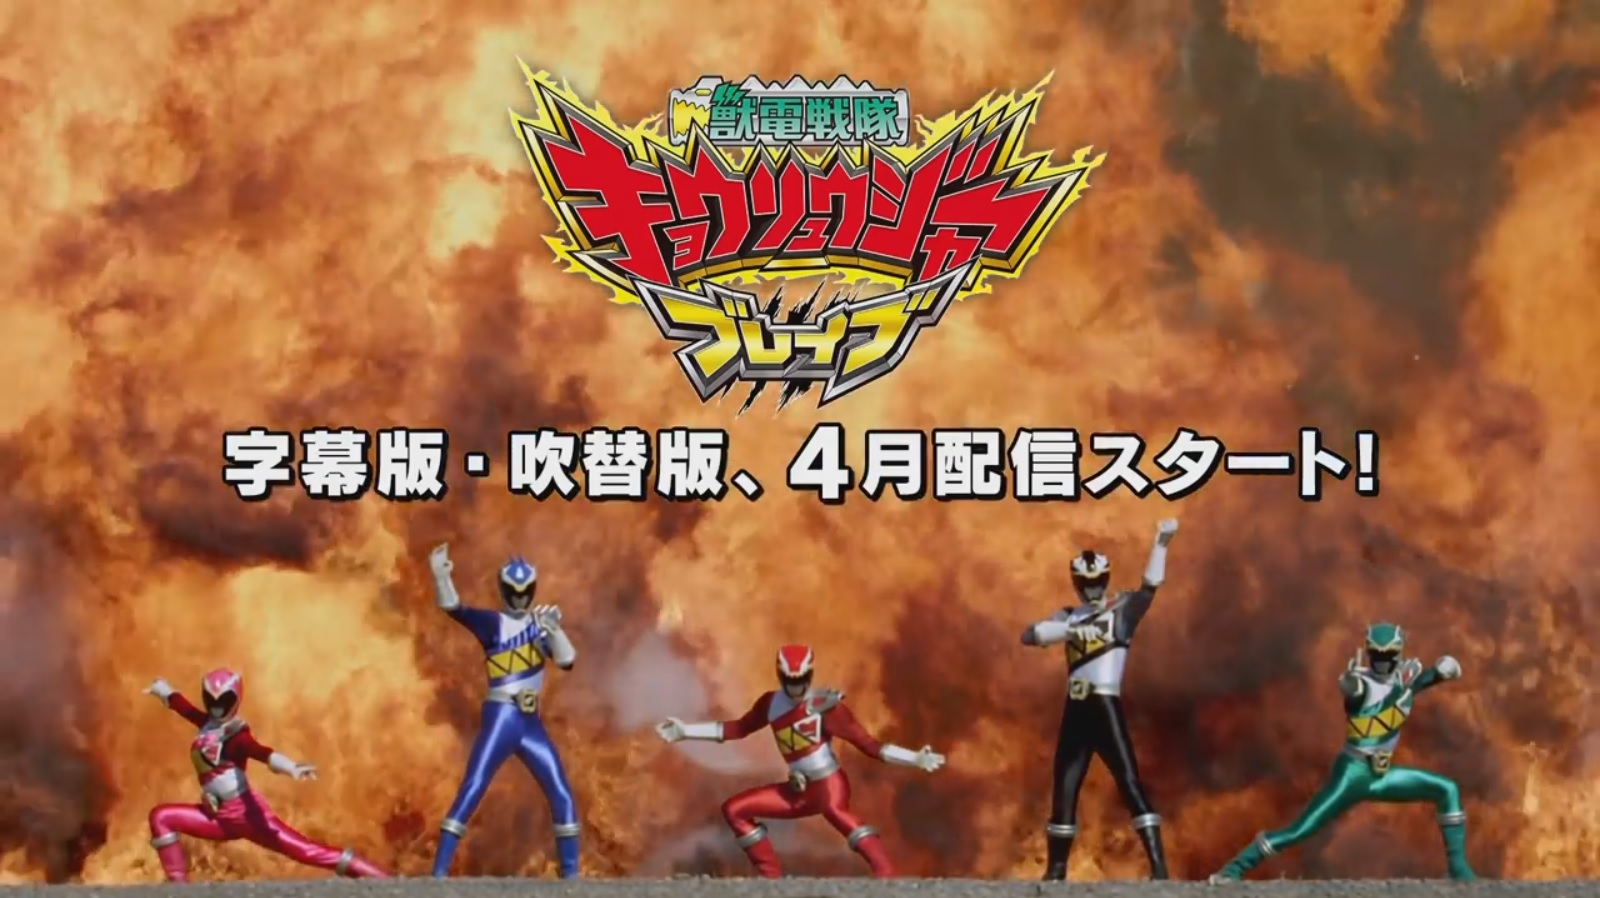 Japanese Promotional Video for Zyuden Sentai Kyoryuger Brave Released